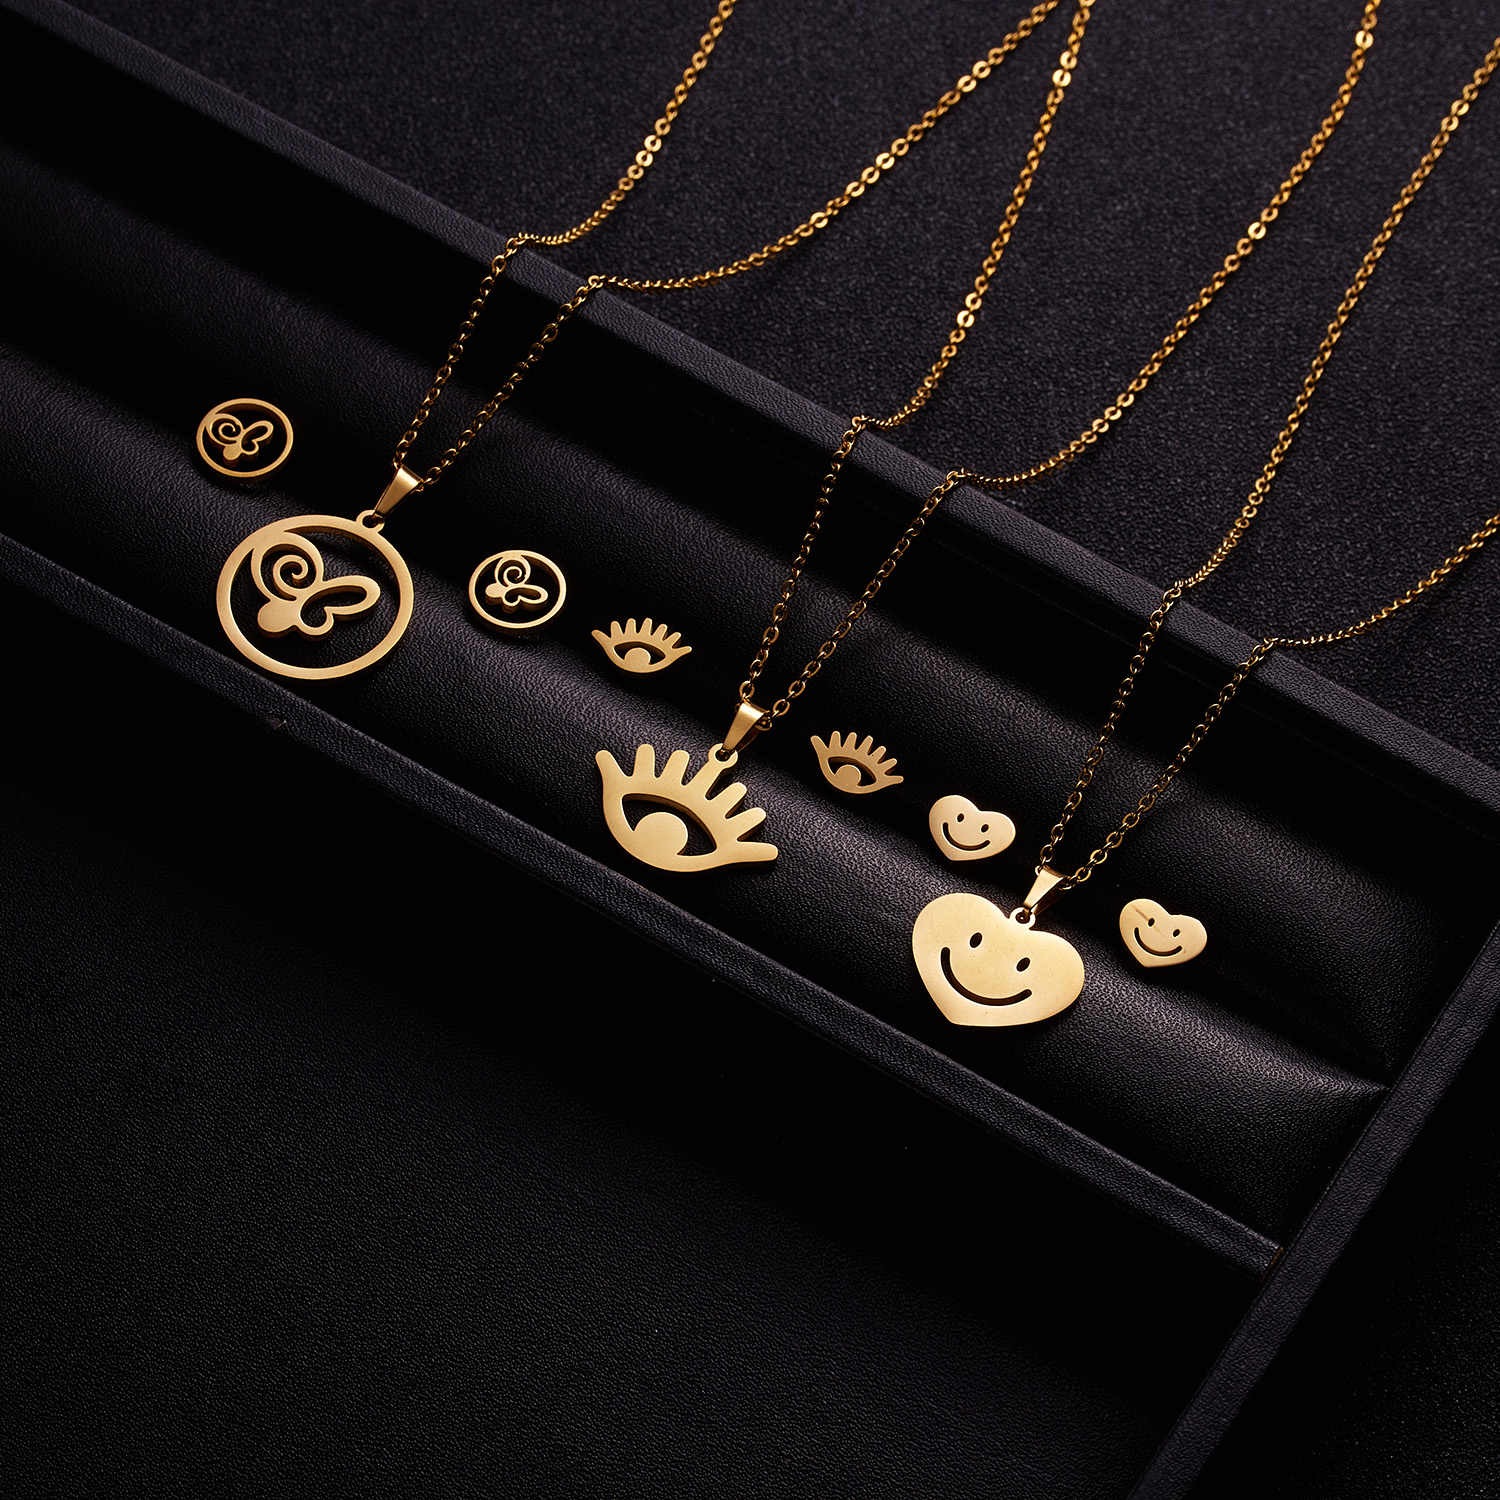 Rinhoo Rose Gold Color Necklace Earring Bracelet Ring Set Rhinestone New Simple Party Dress Jewelry Sets For Women Devil eye